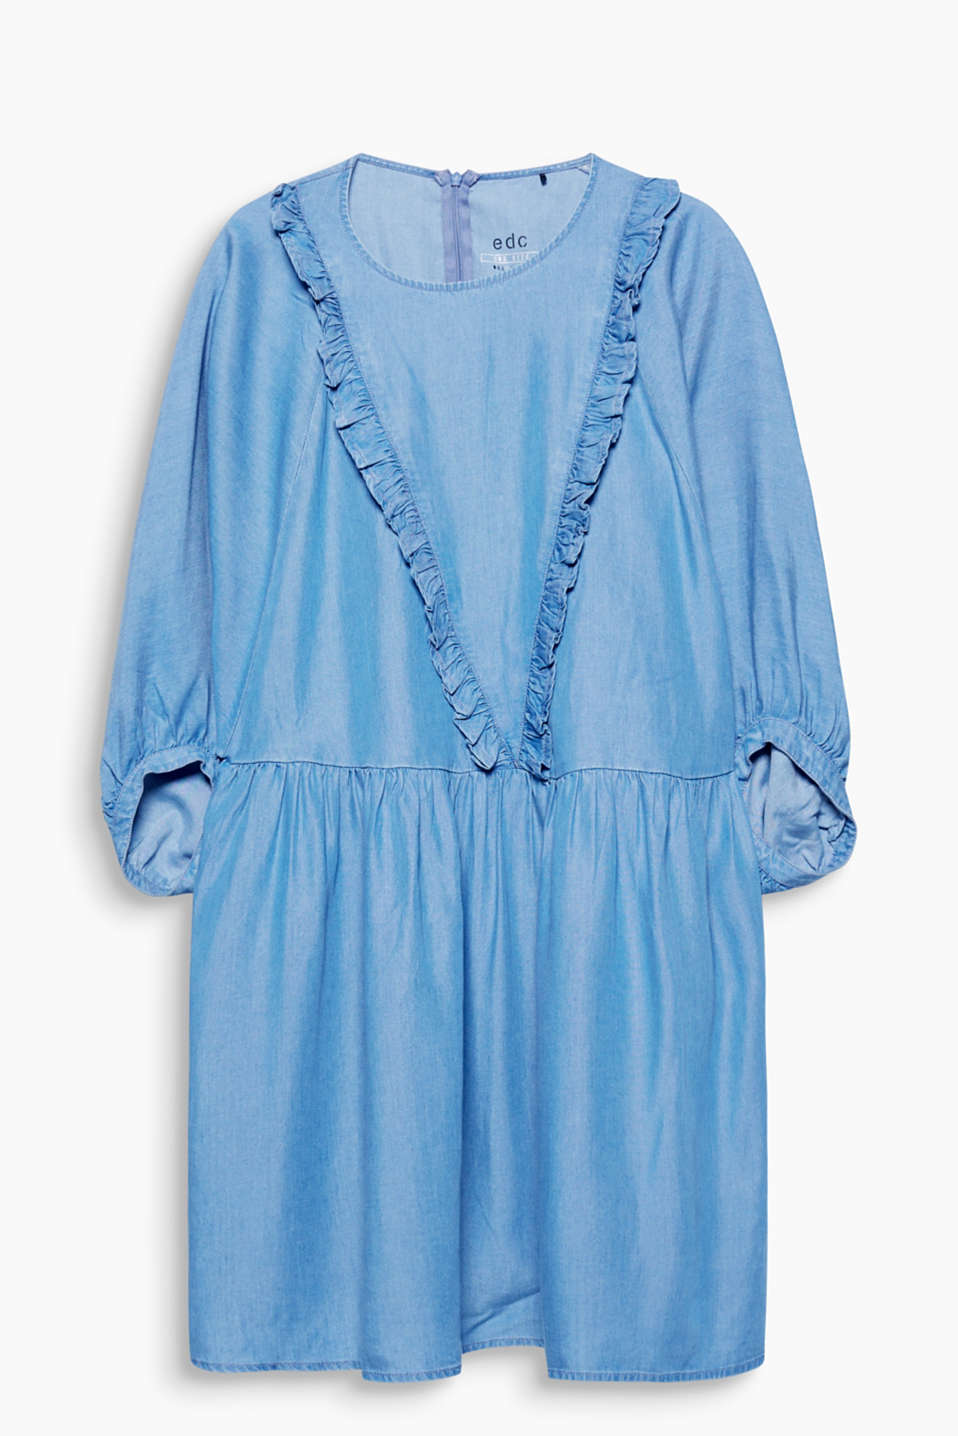 For a romantic denim look: flowing, figure-skimming dress with pretty frills and balloon sleeves